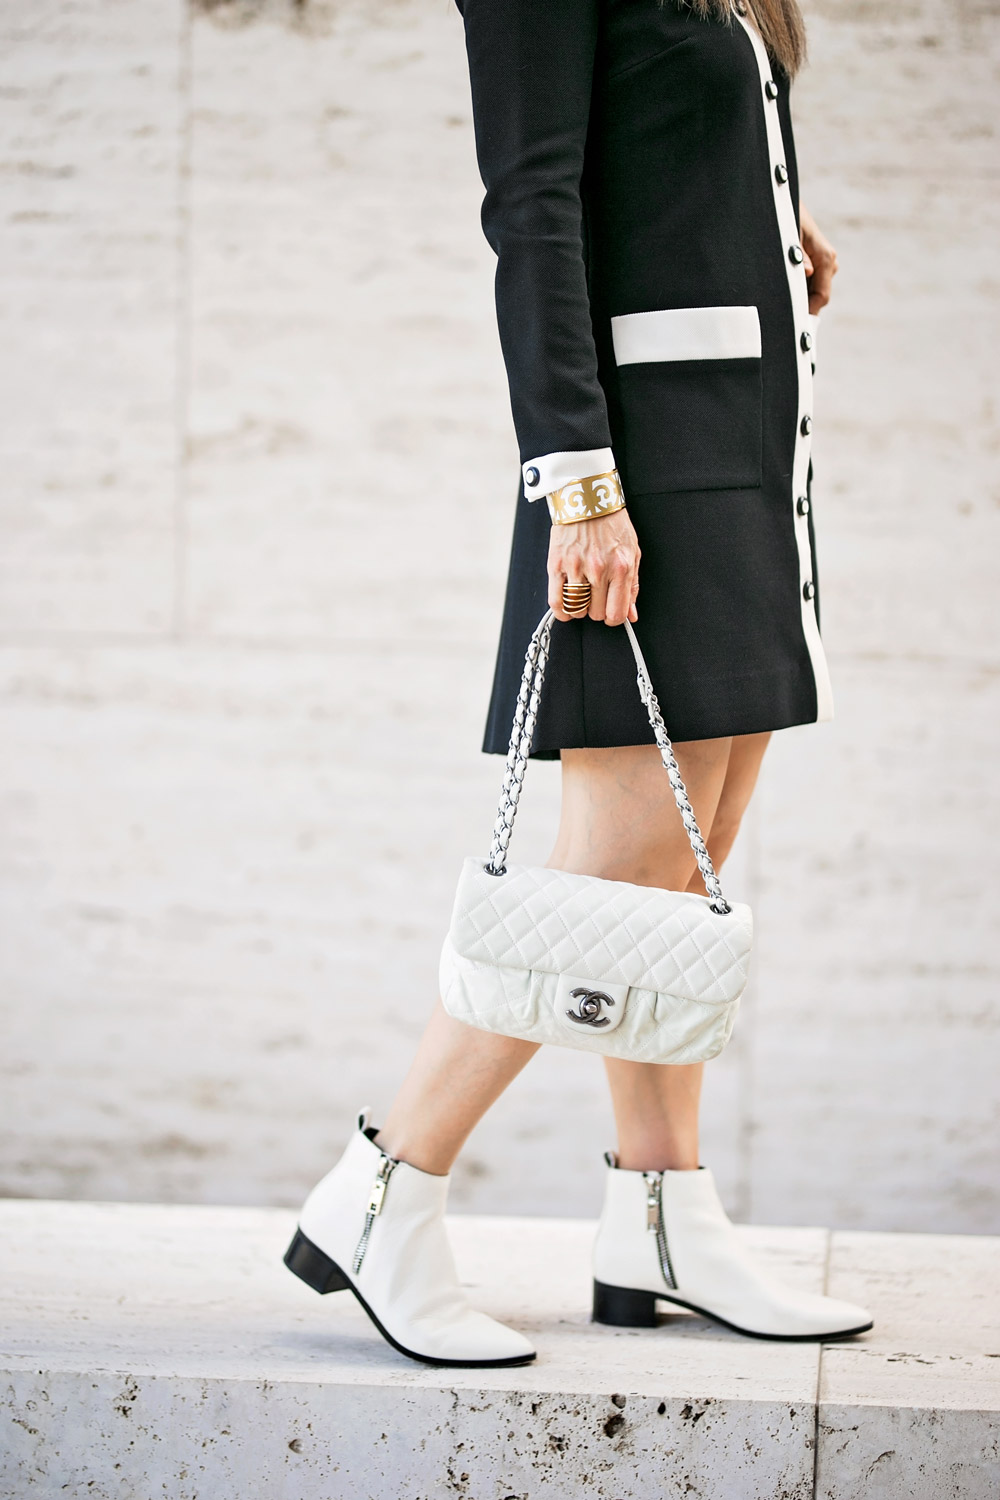 vintage black white contrast trim dress dolce vita white booties hermes balcon bracelet chanel white flap bag